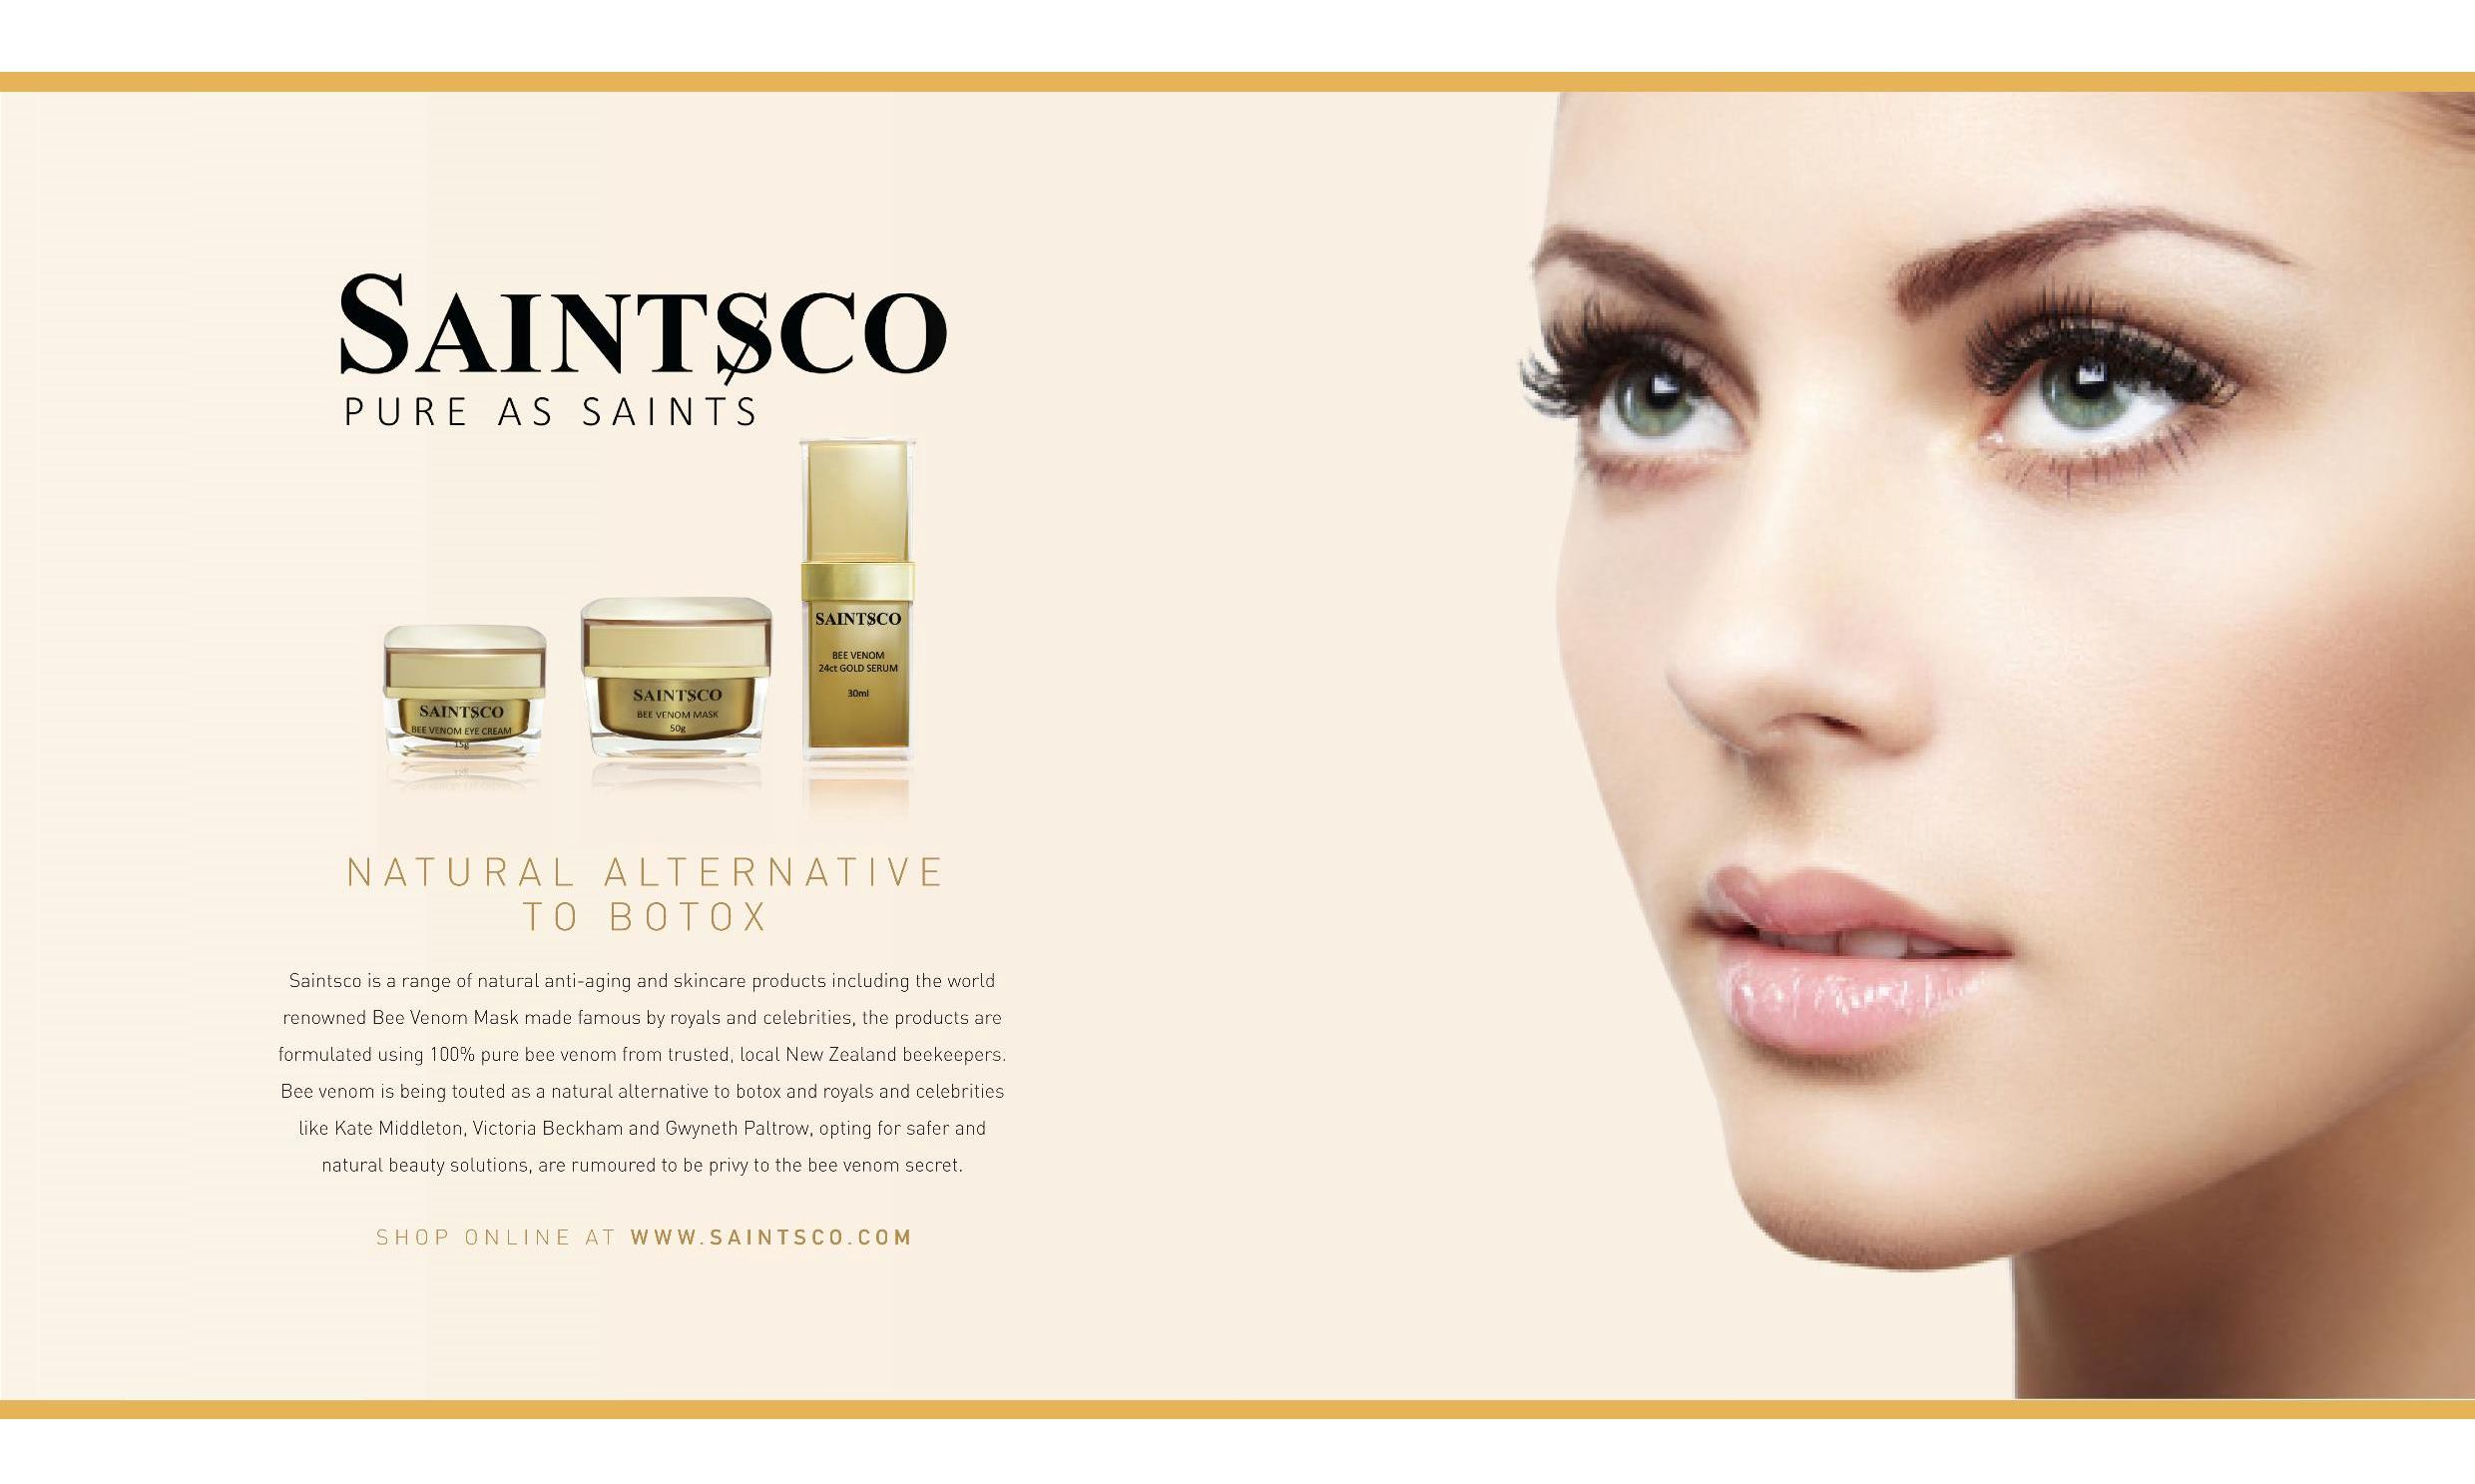 Saintsco Products Ad on The Beauty Book 2015